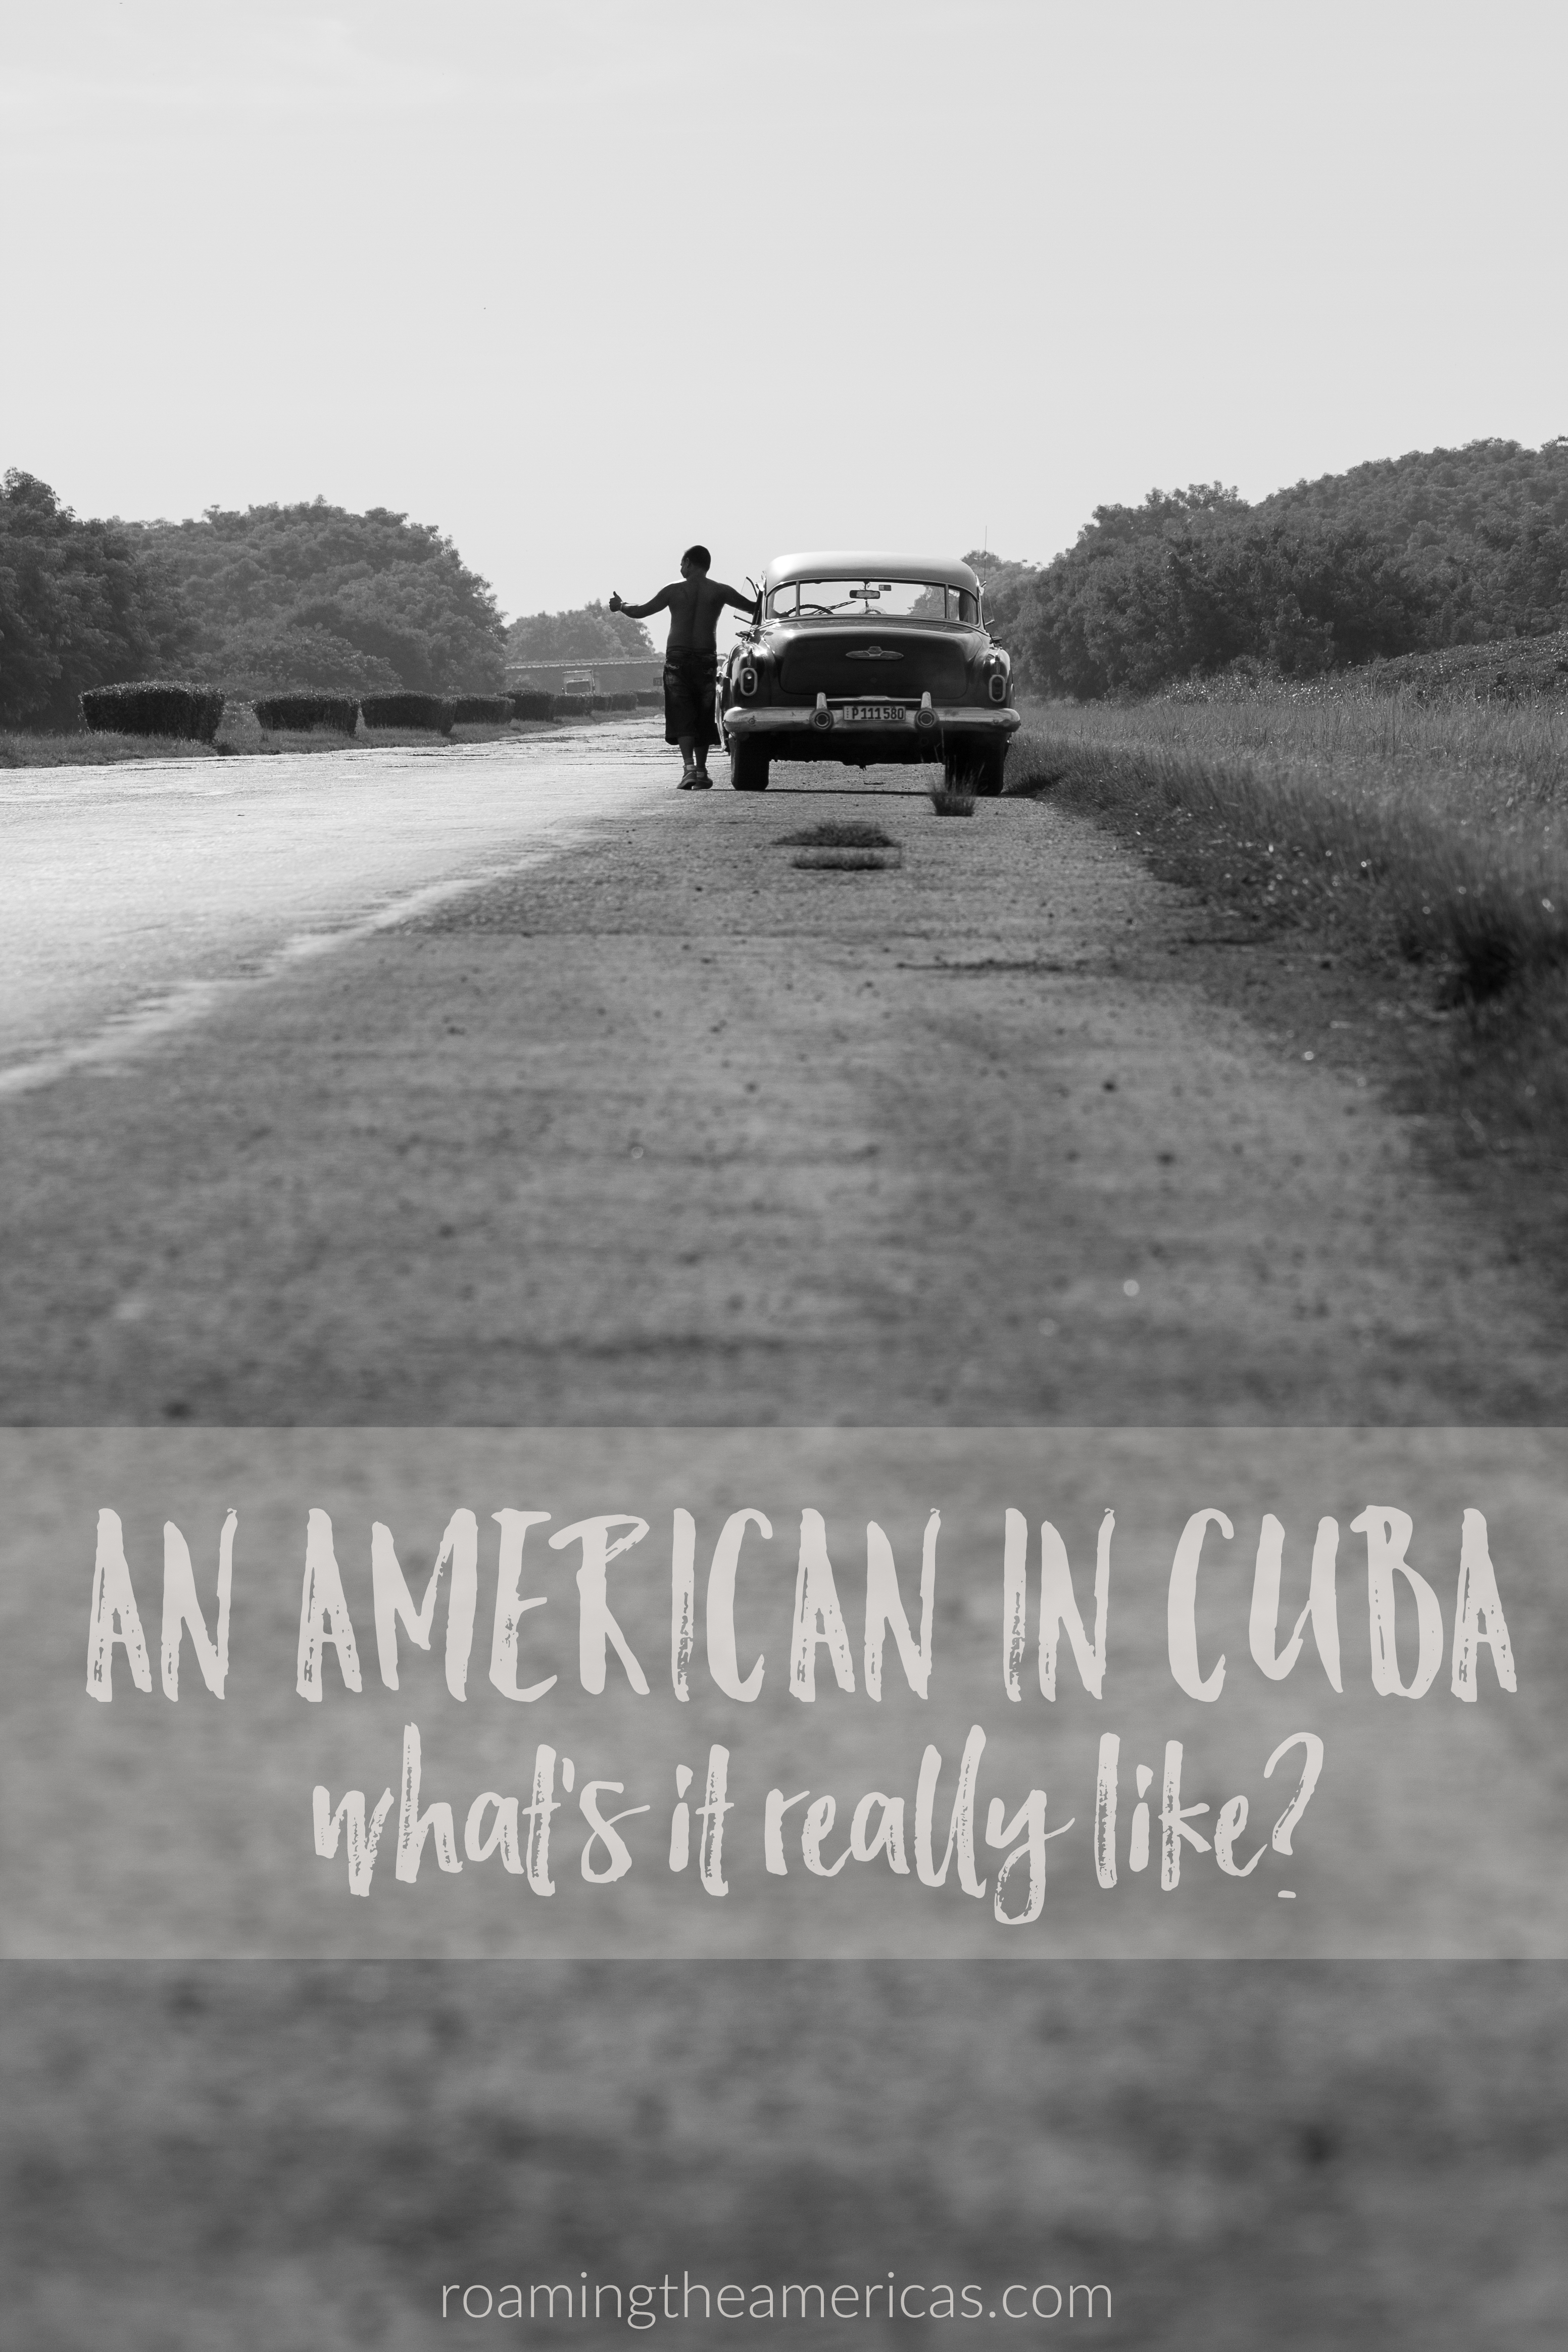 An American in Cuba: What's It Really Like? Reflections on Cuban culture and travel to Cuba as an American from @roamtheamericas